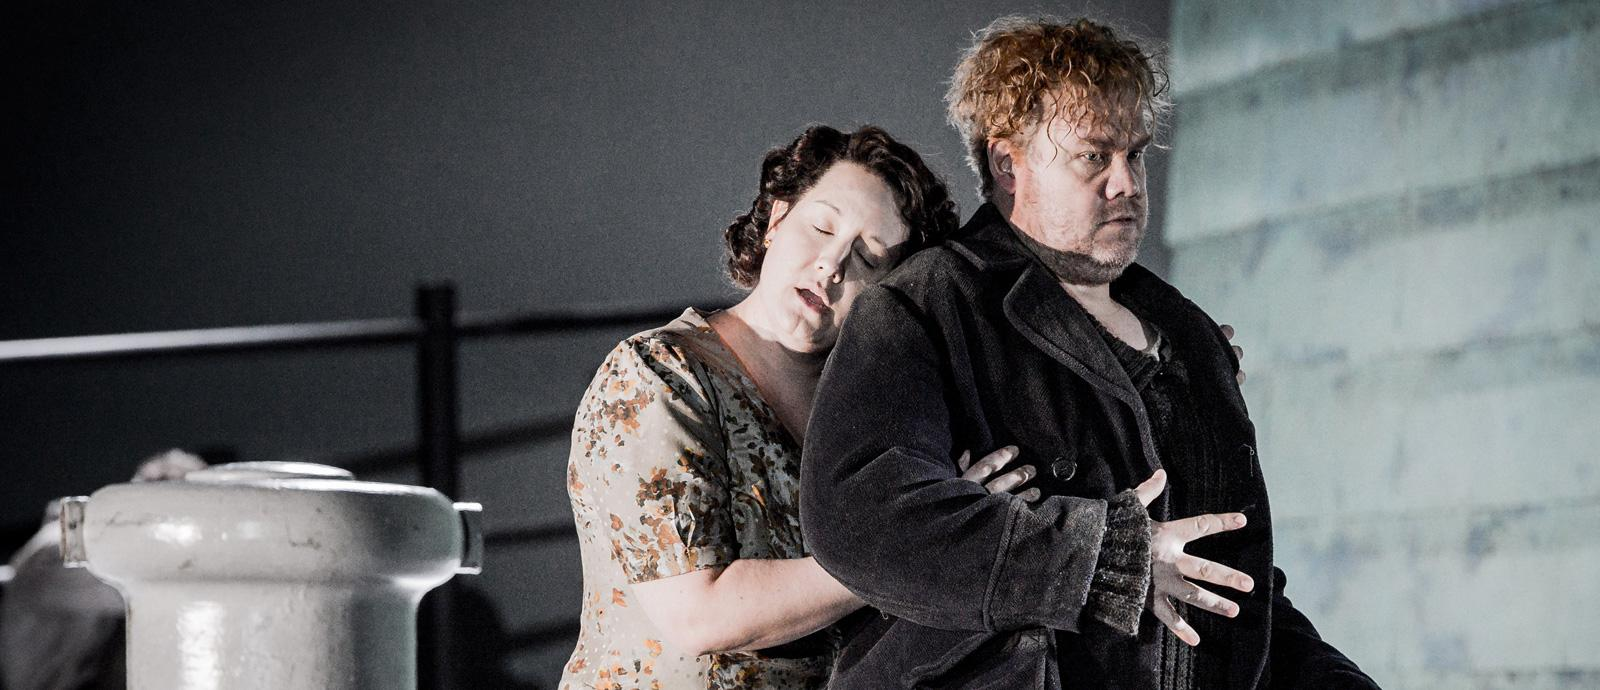 ENO Peter Grimes: Elza Van Den Heever as Ellen Orford and Stuart Skelton as Peter Grimes. (c) Robert Workman